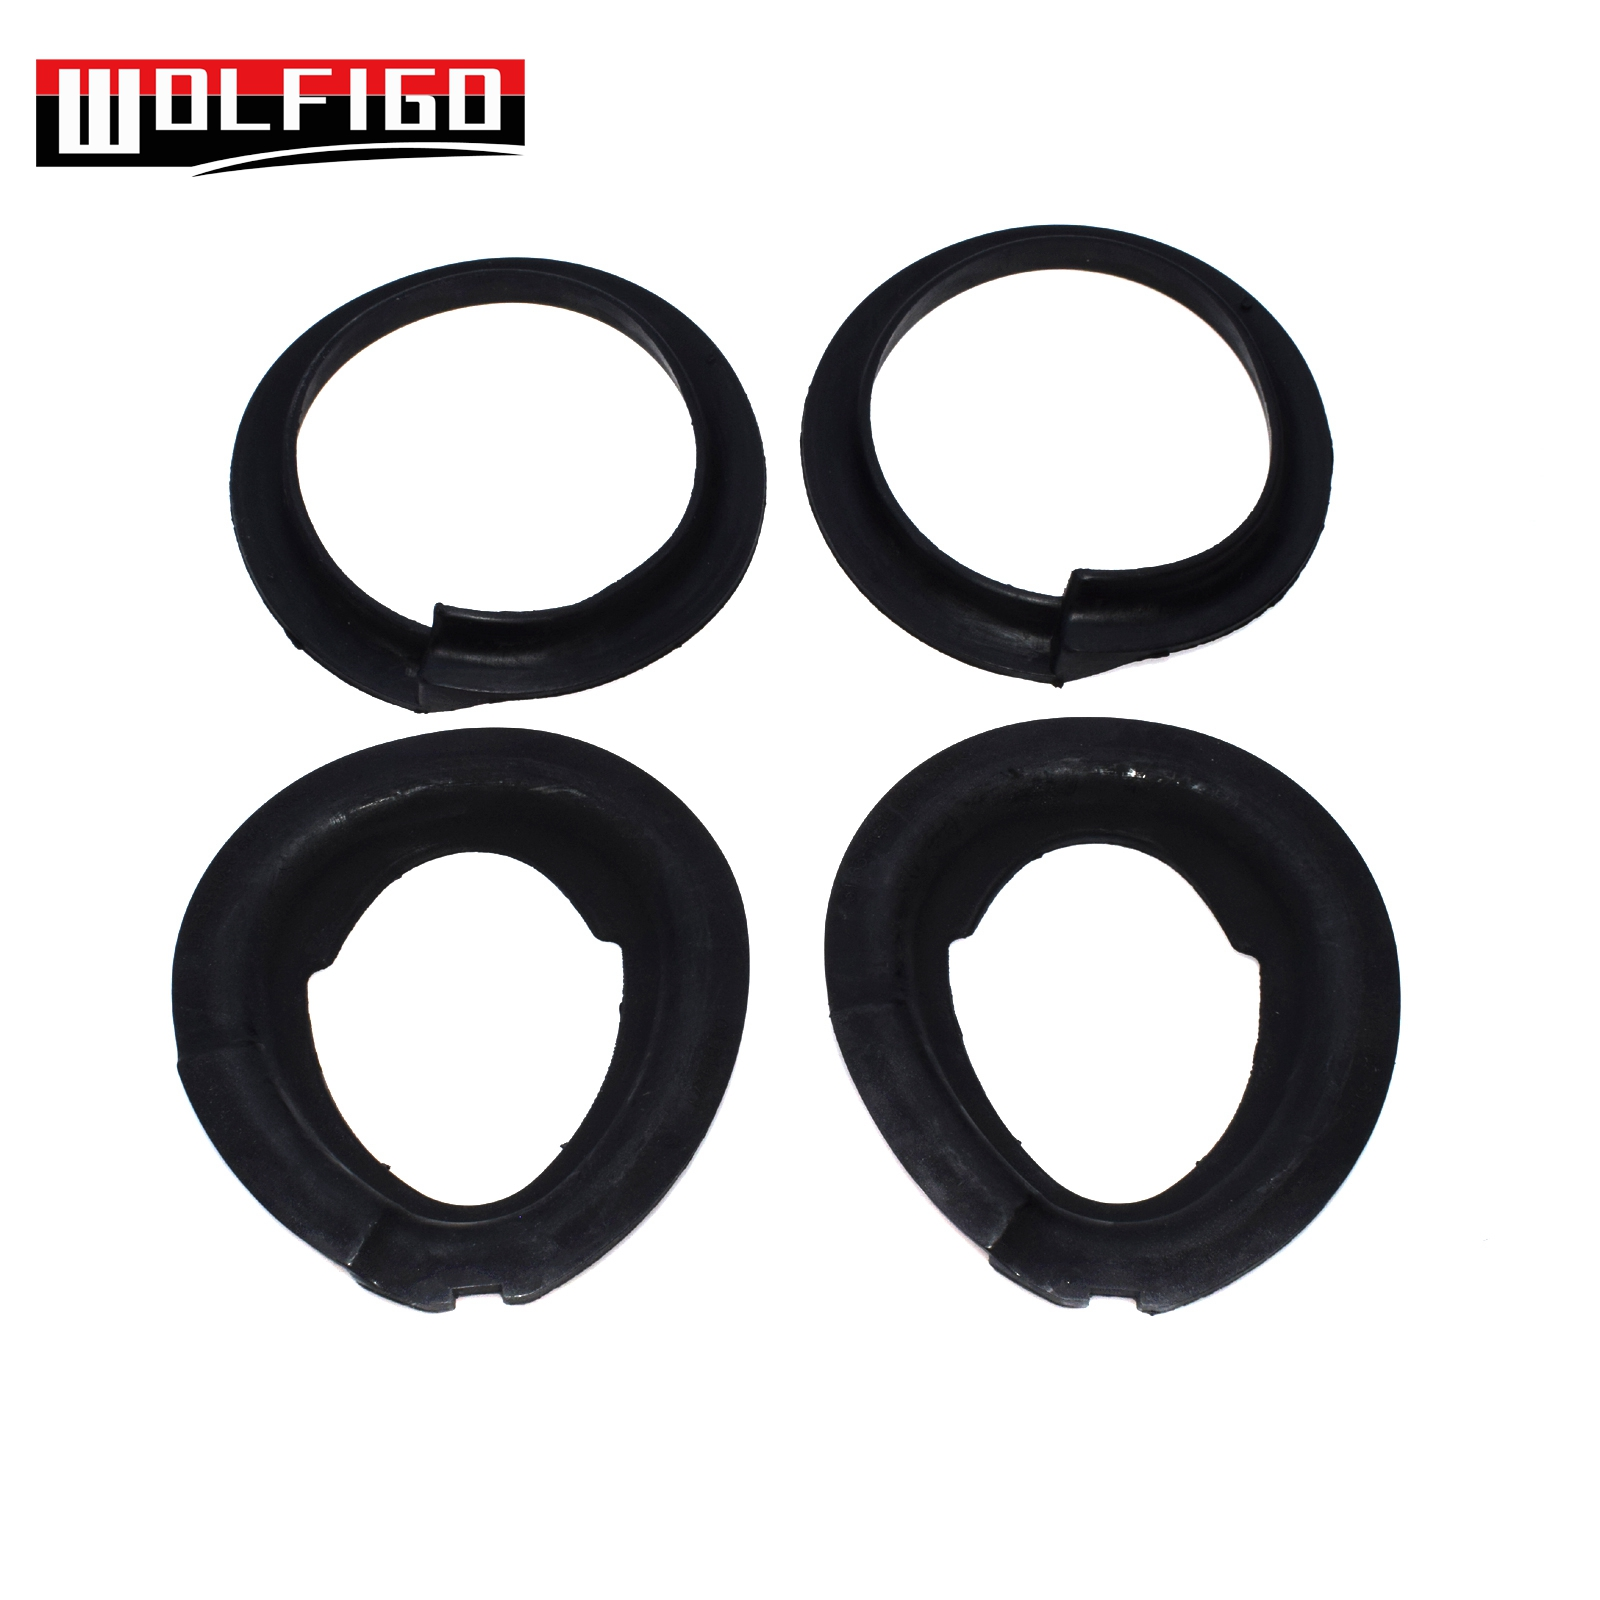 WOLFIGO 1PC / 2PCS / 4PCS Spring Pad Front Upper Front Lower Suspension Spring Insulator For E39 E46 E85 31331096664,31331091867